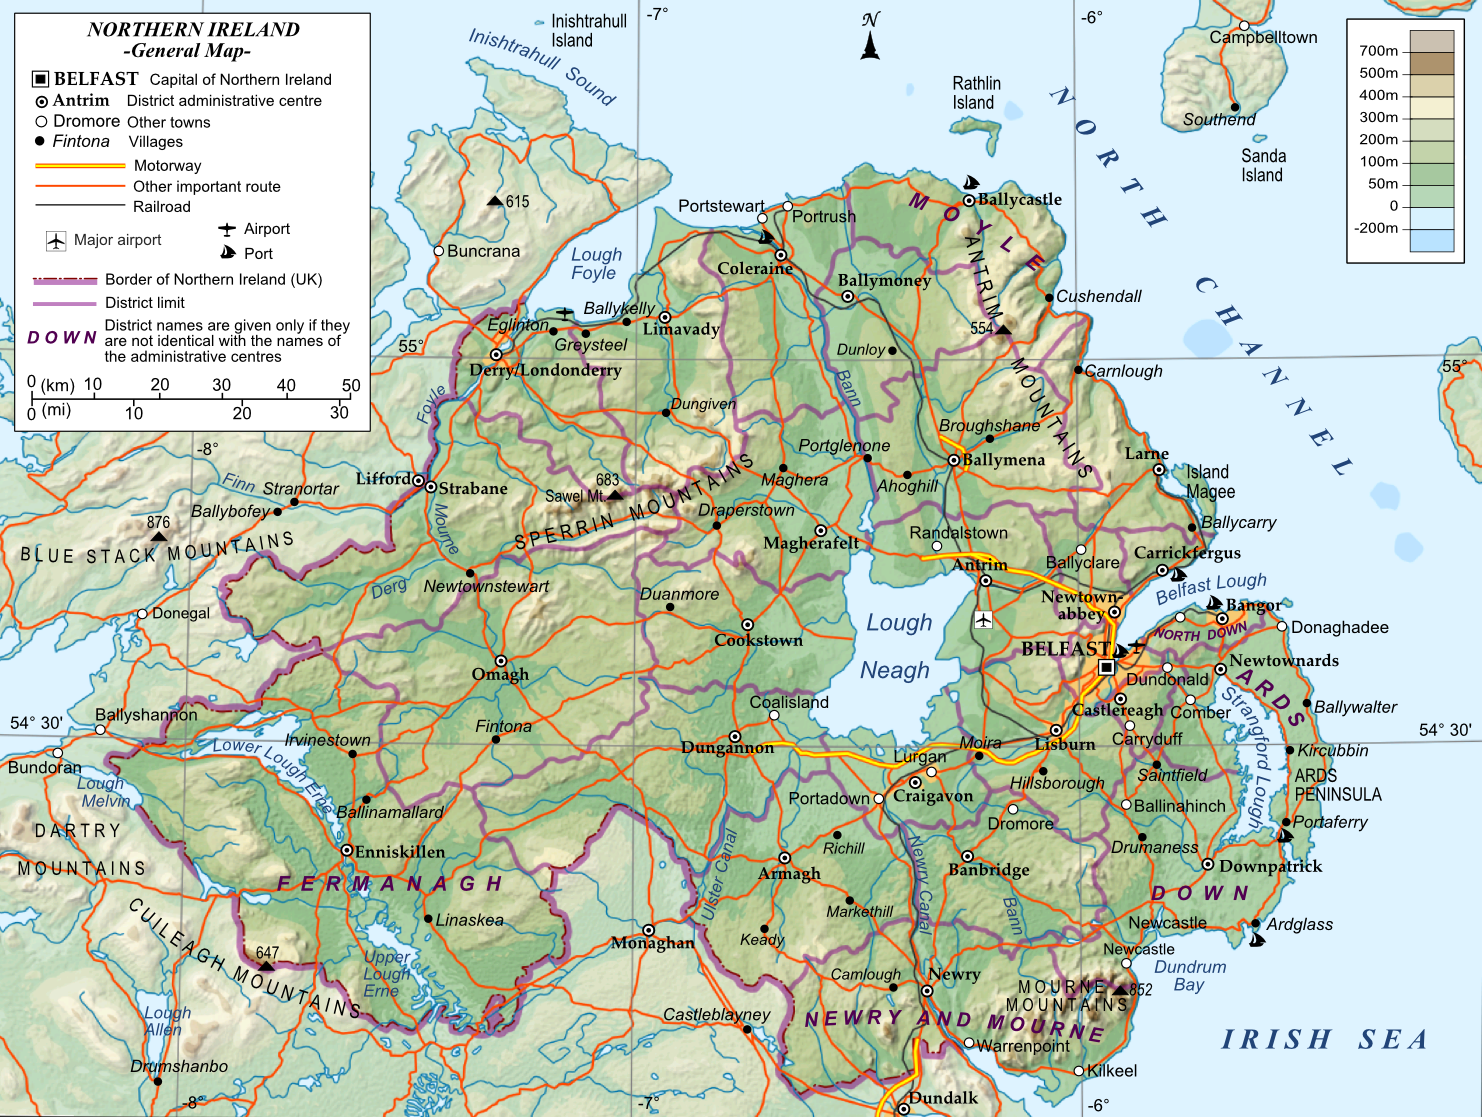 Northern Ireland General Map Northern Ireland Mappery - Ireland physical map